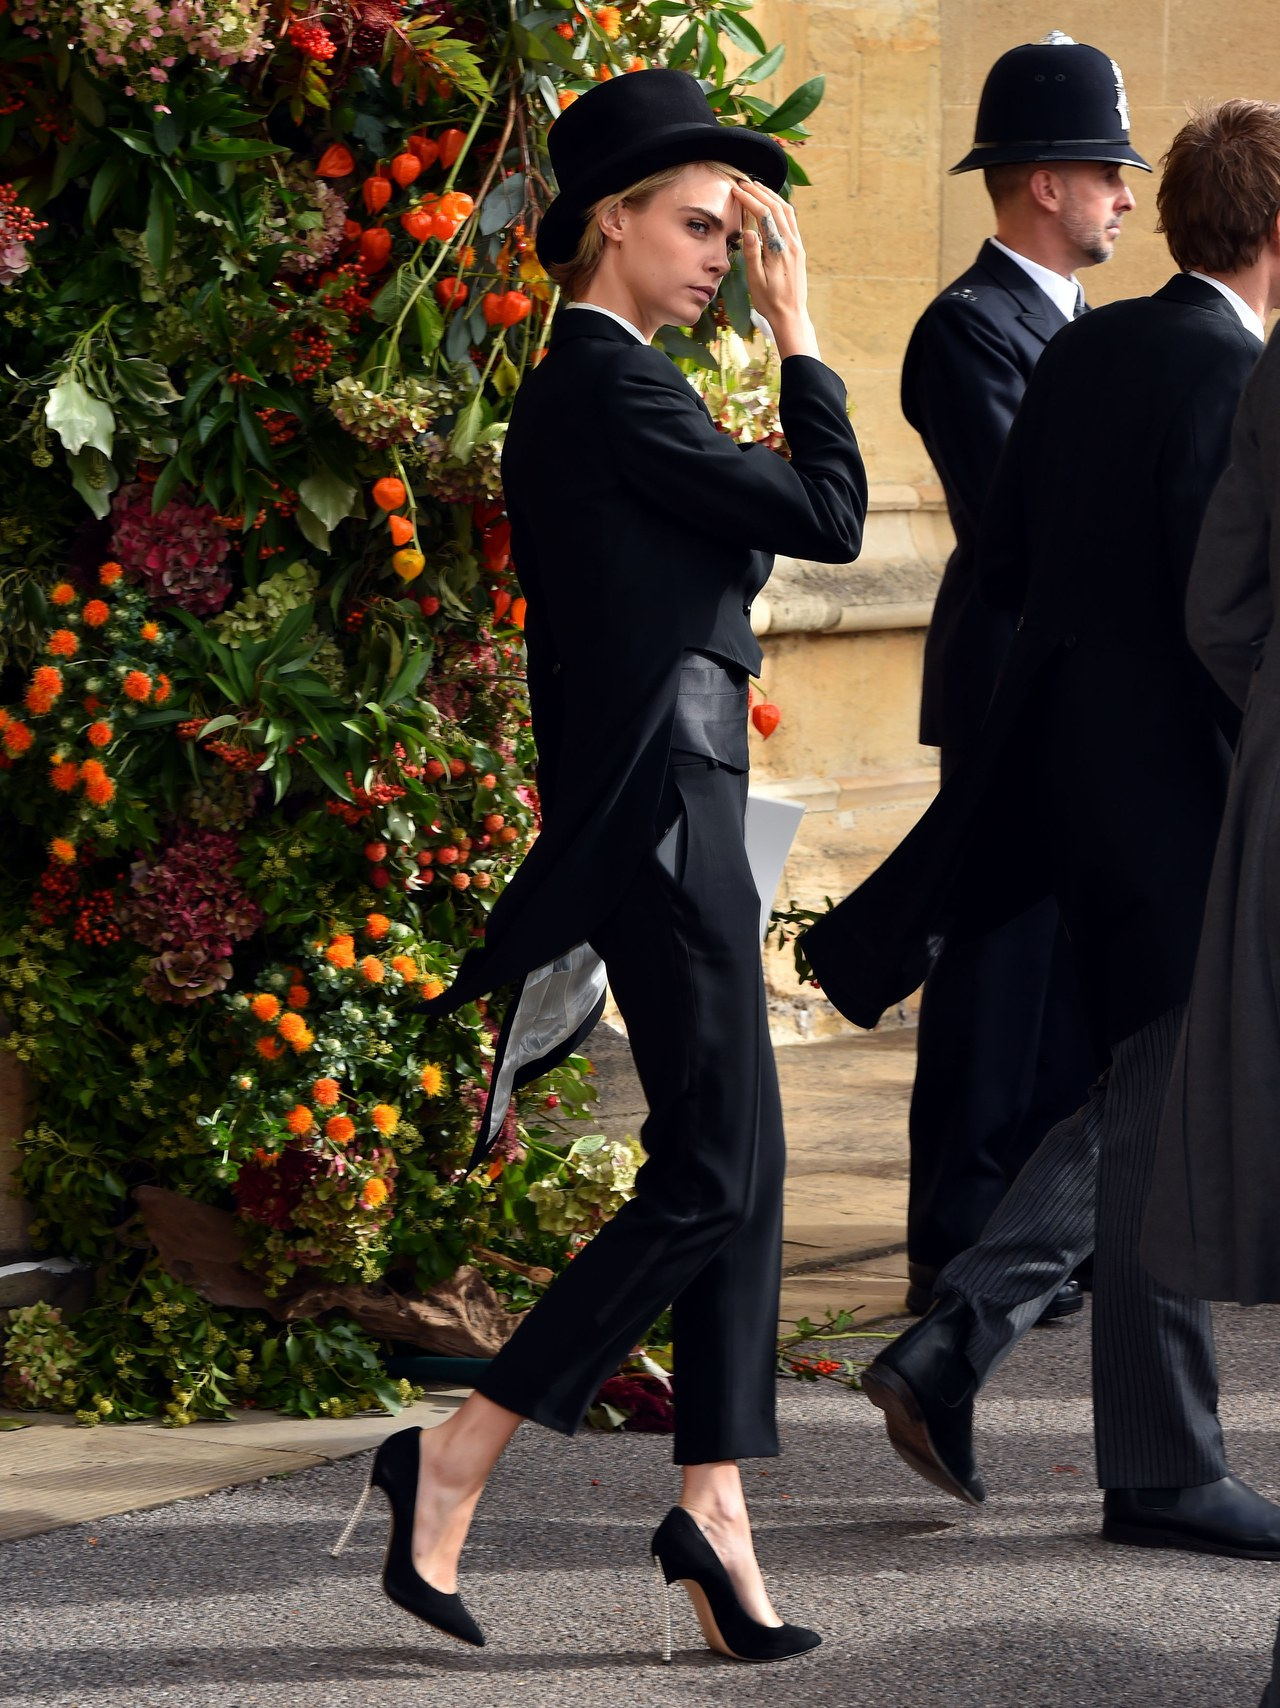 Cara Delevingne Bold Royal Wedding Look 1